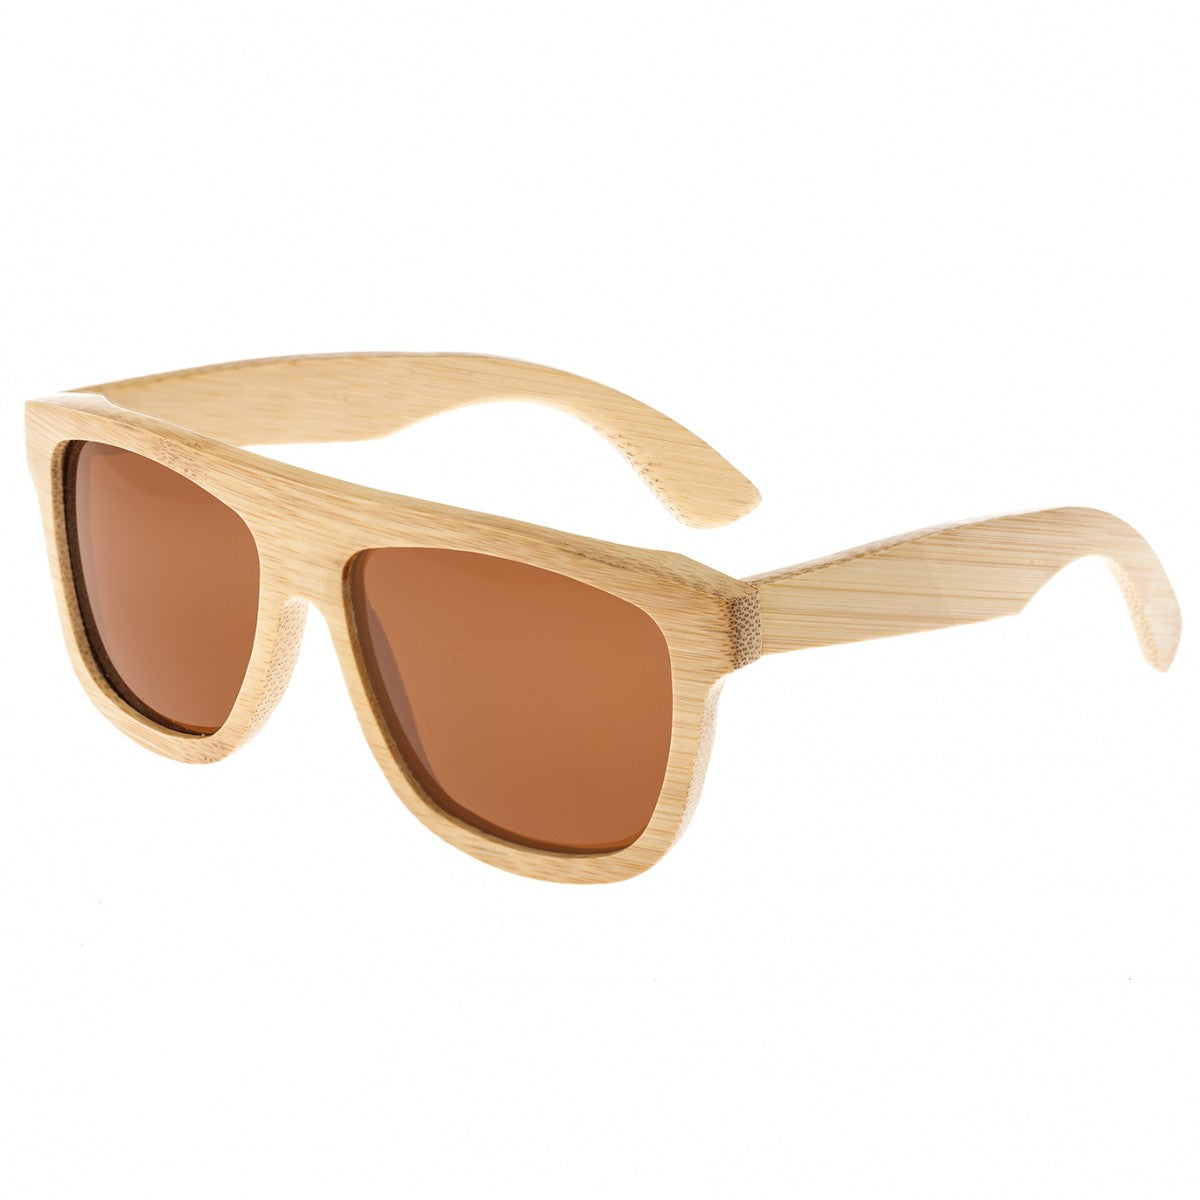 Earth Wood Imperial Polarized Sunglasses - Khaki/Brown